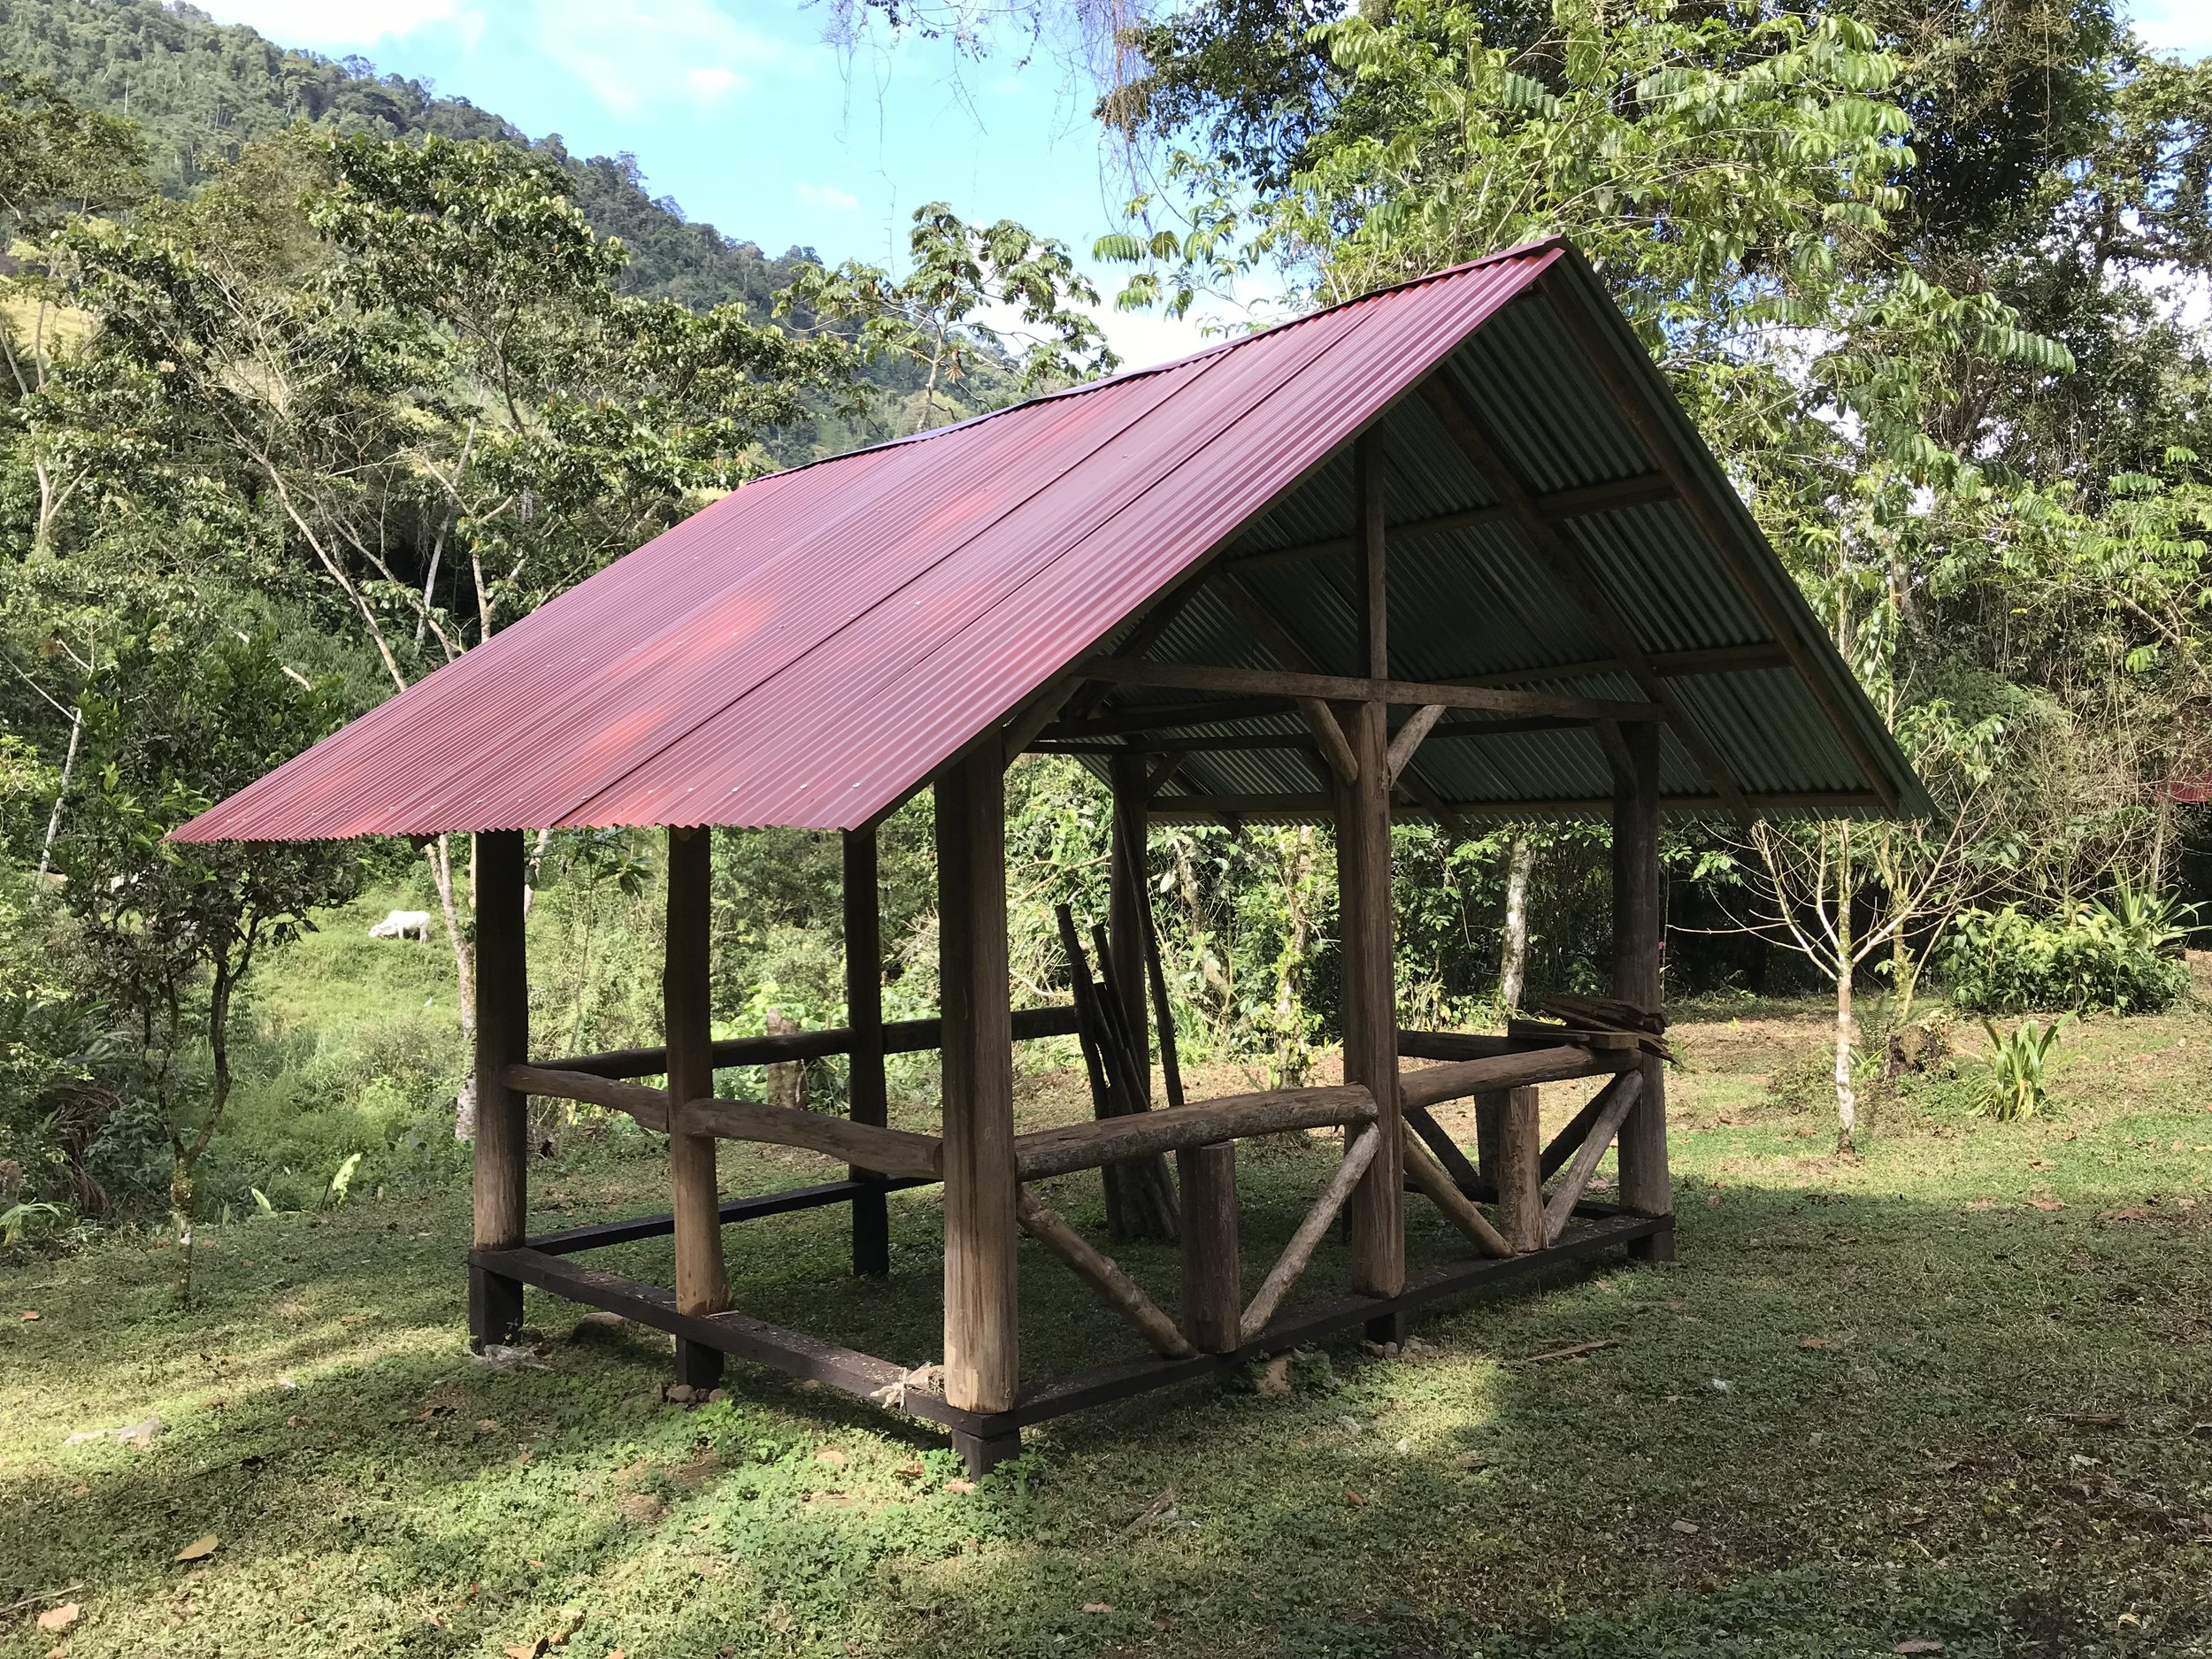 #5 Campsite.  1 Camper on a Grass Campsite with a Tin Roof.....$20 per night. Bring your tent or rent ours for a small fee. The Perfect Pavilion for Family Camping; $185/week, including 2 small children, 10 years old and under.